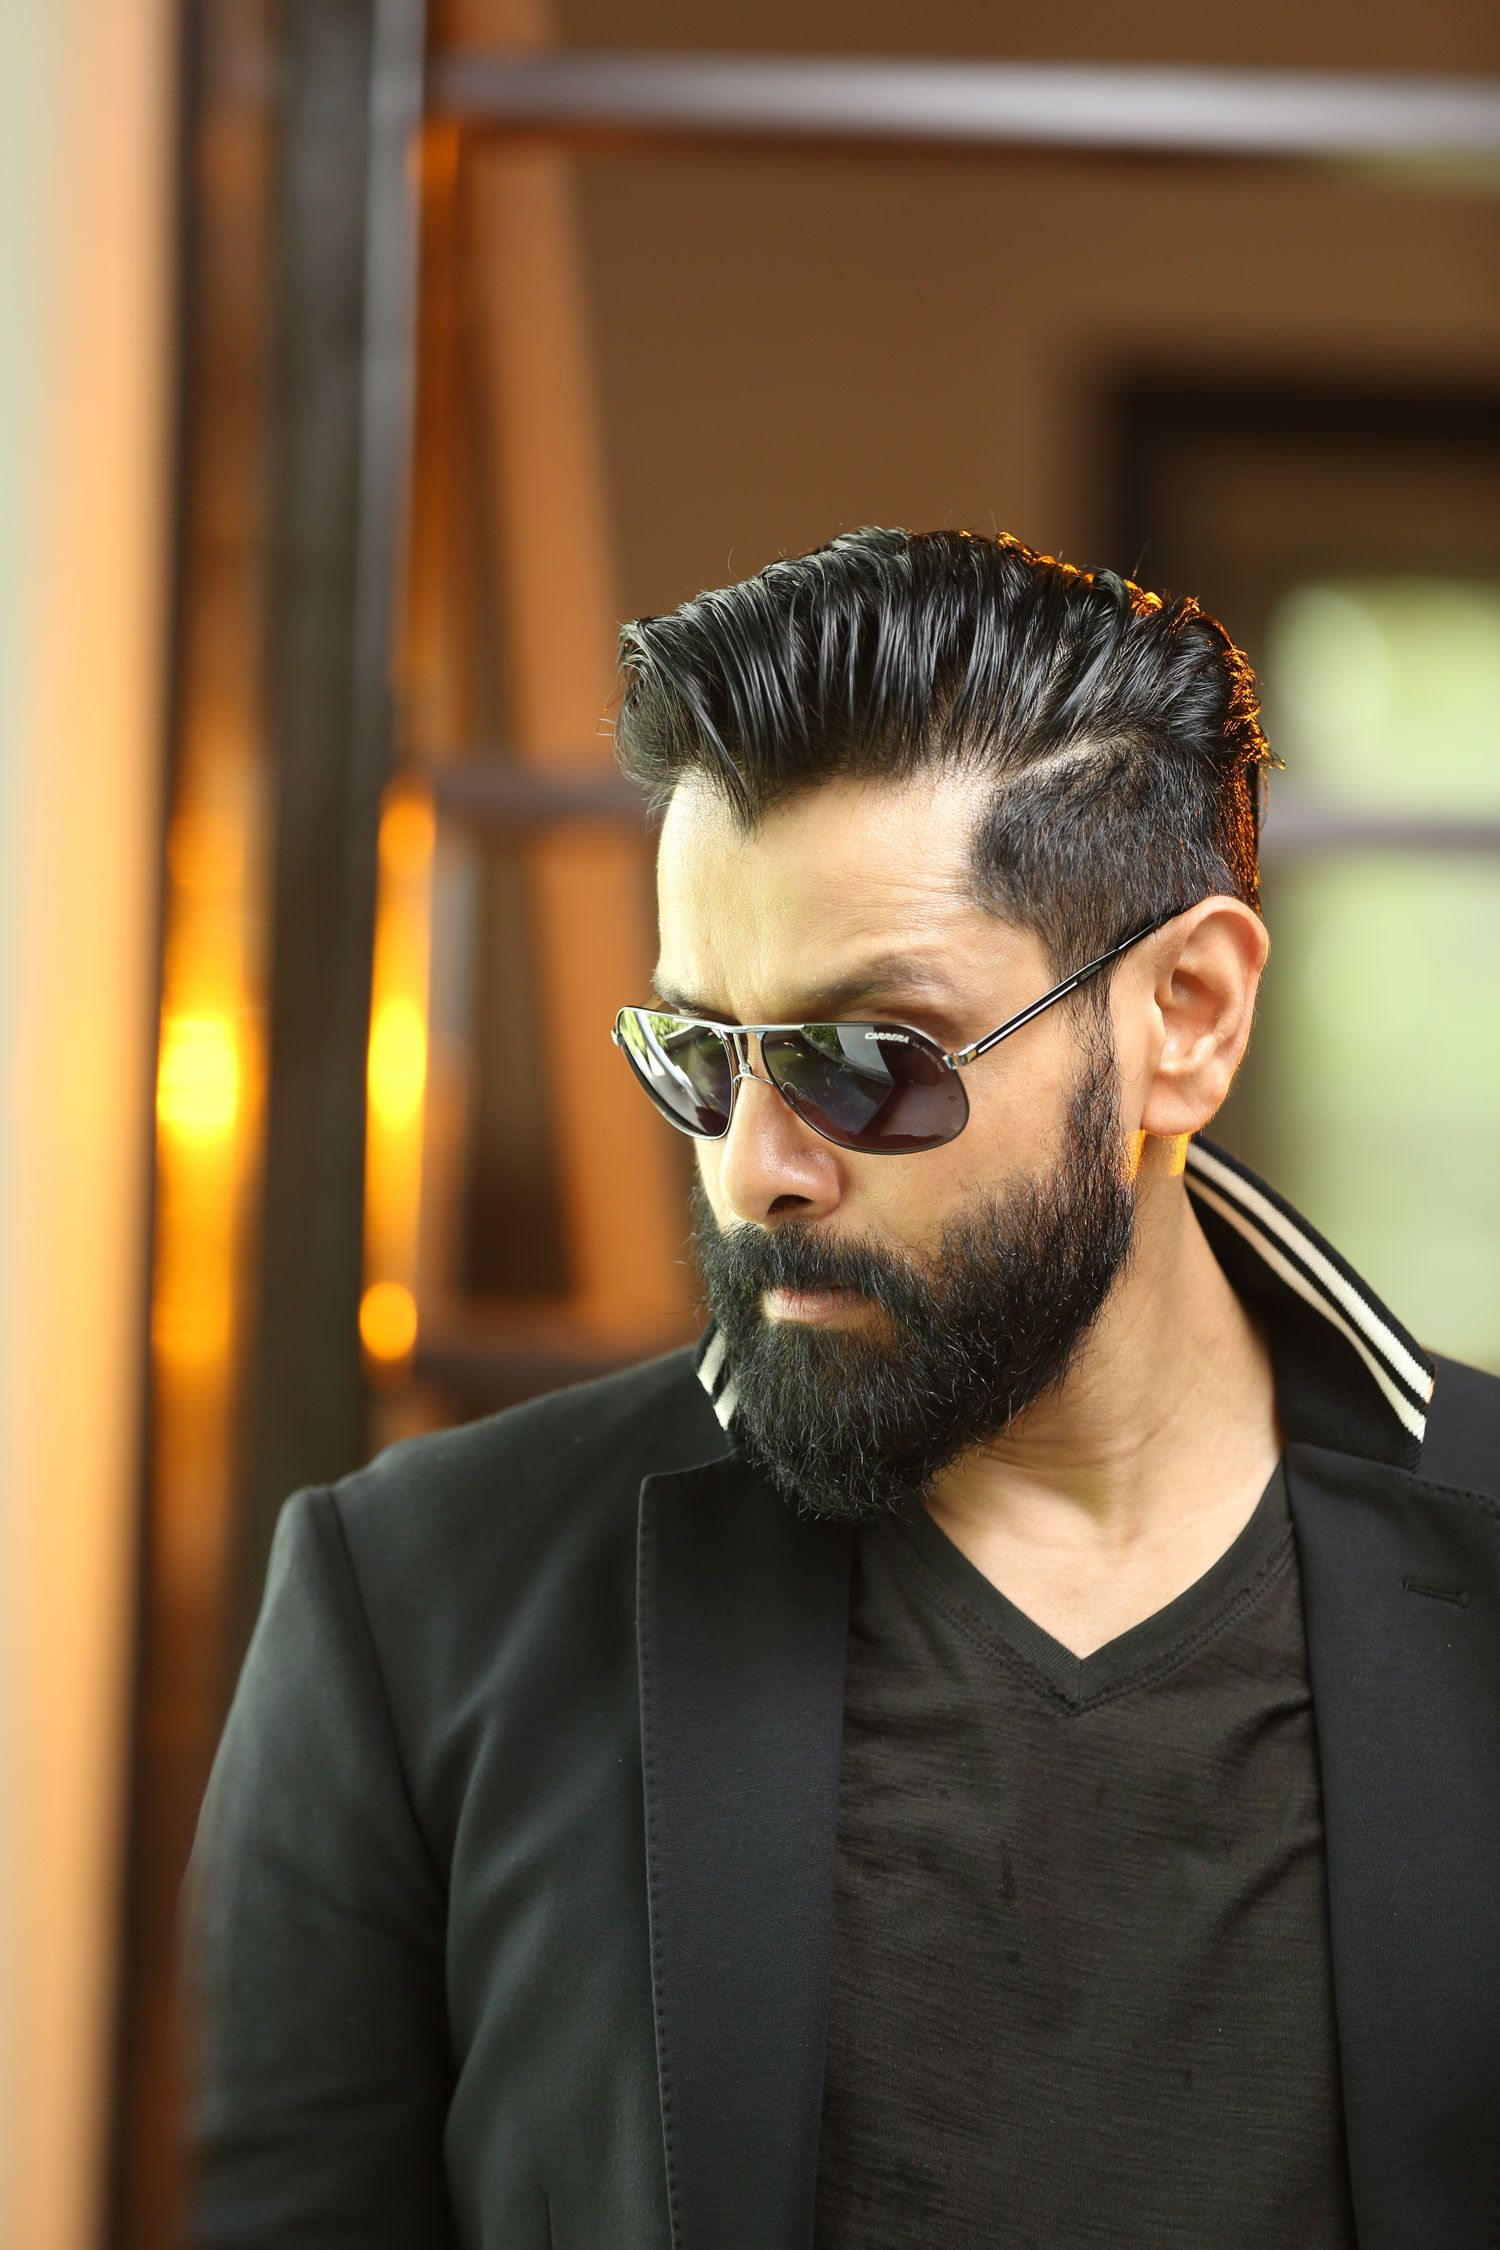 chiyaan vikram latest photo shoot stills | south indian